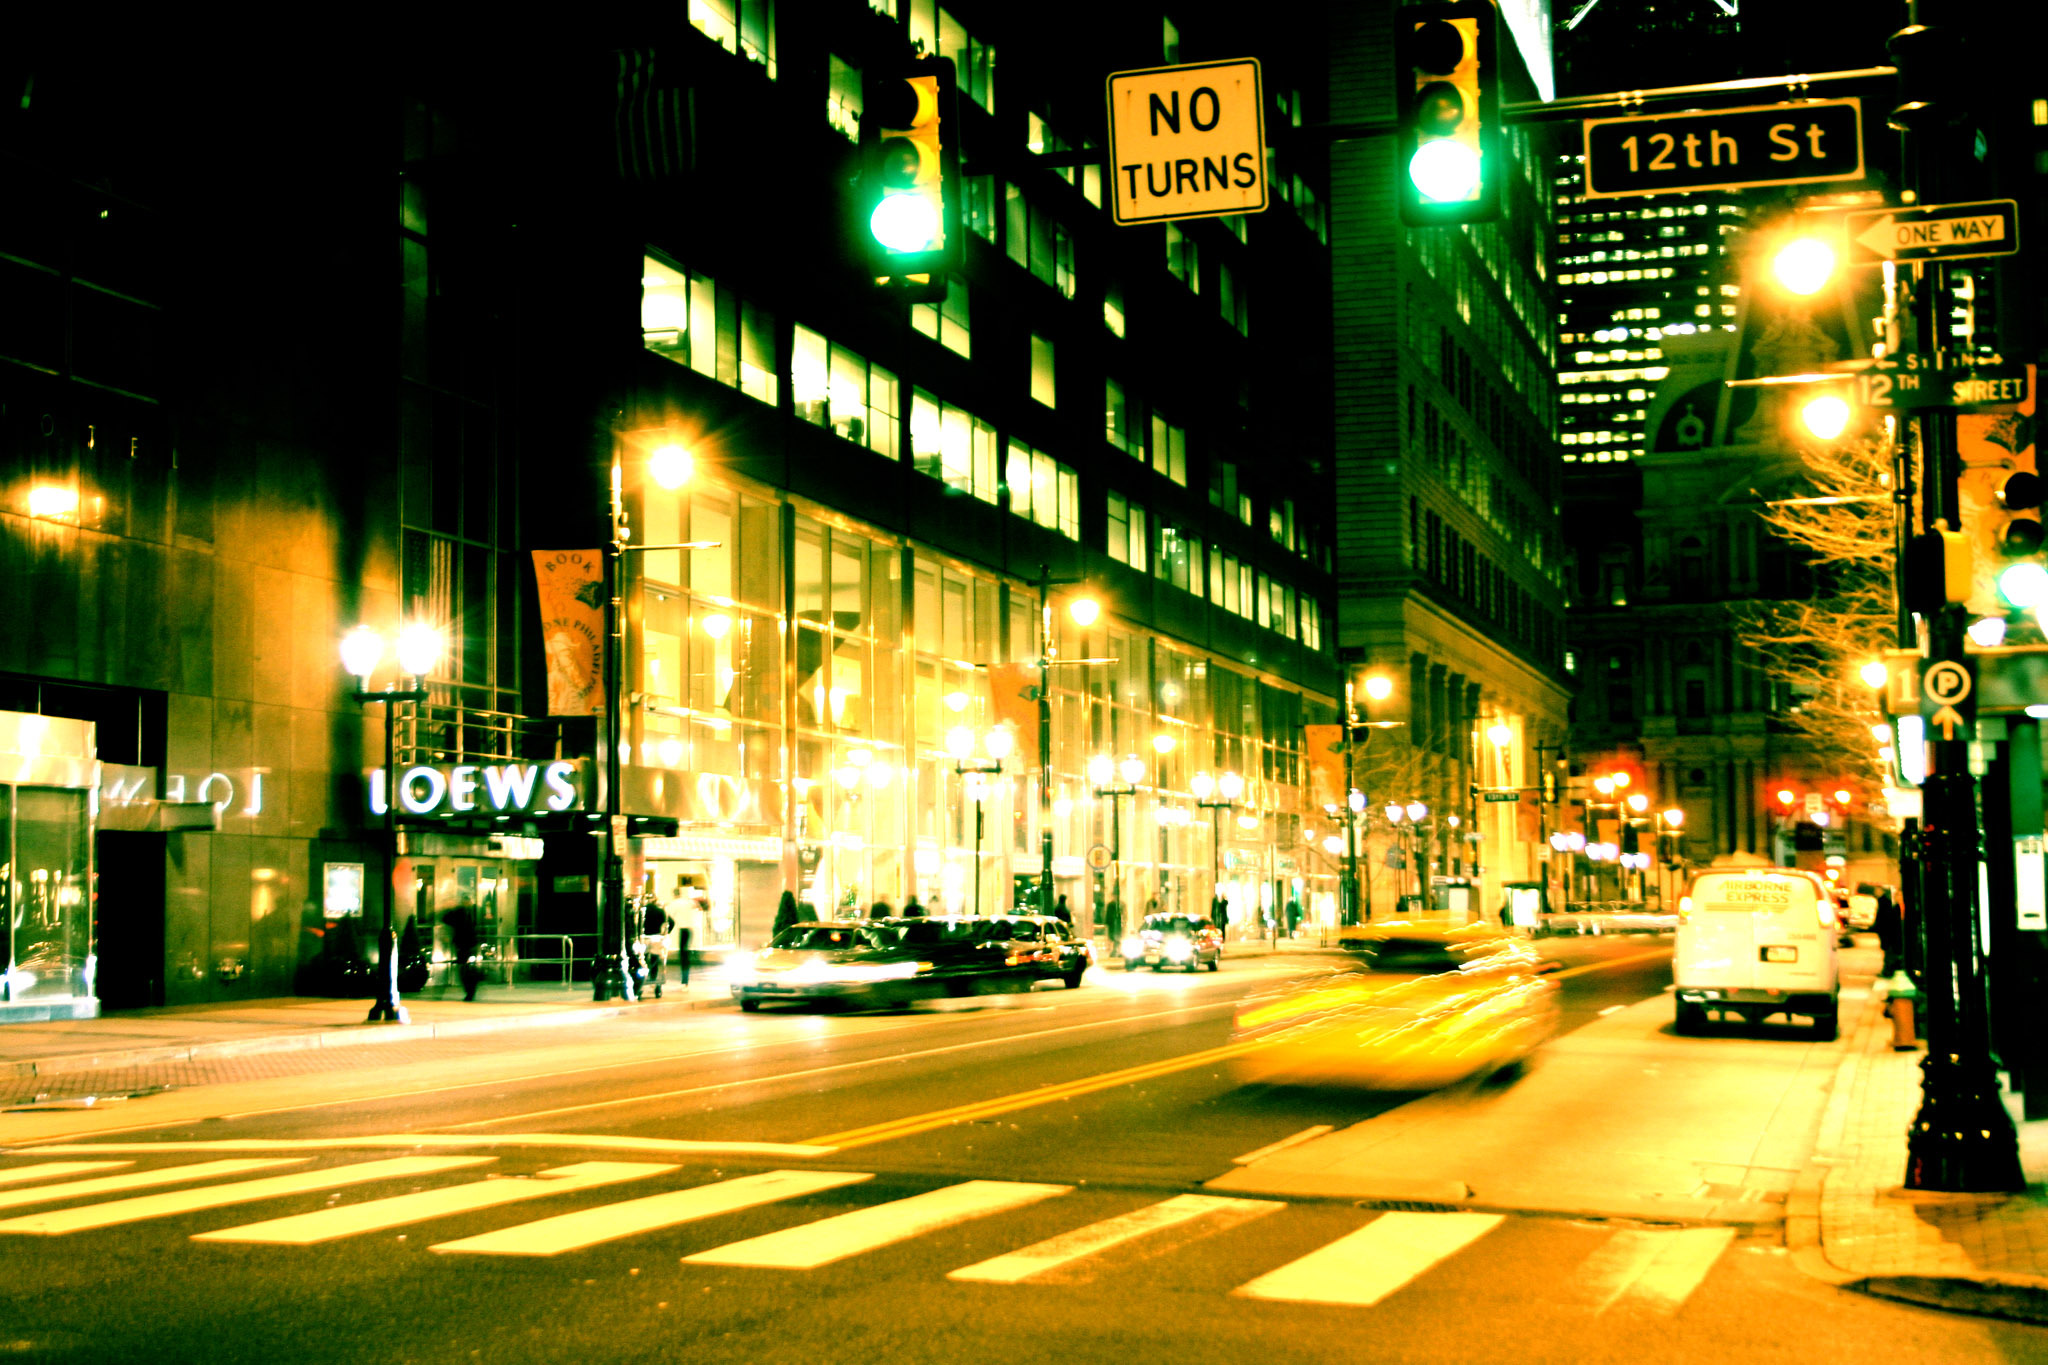 Big city night street wallpaper   ForWallpapercom 2048x1365